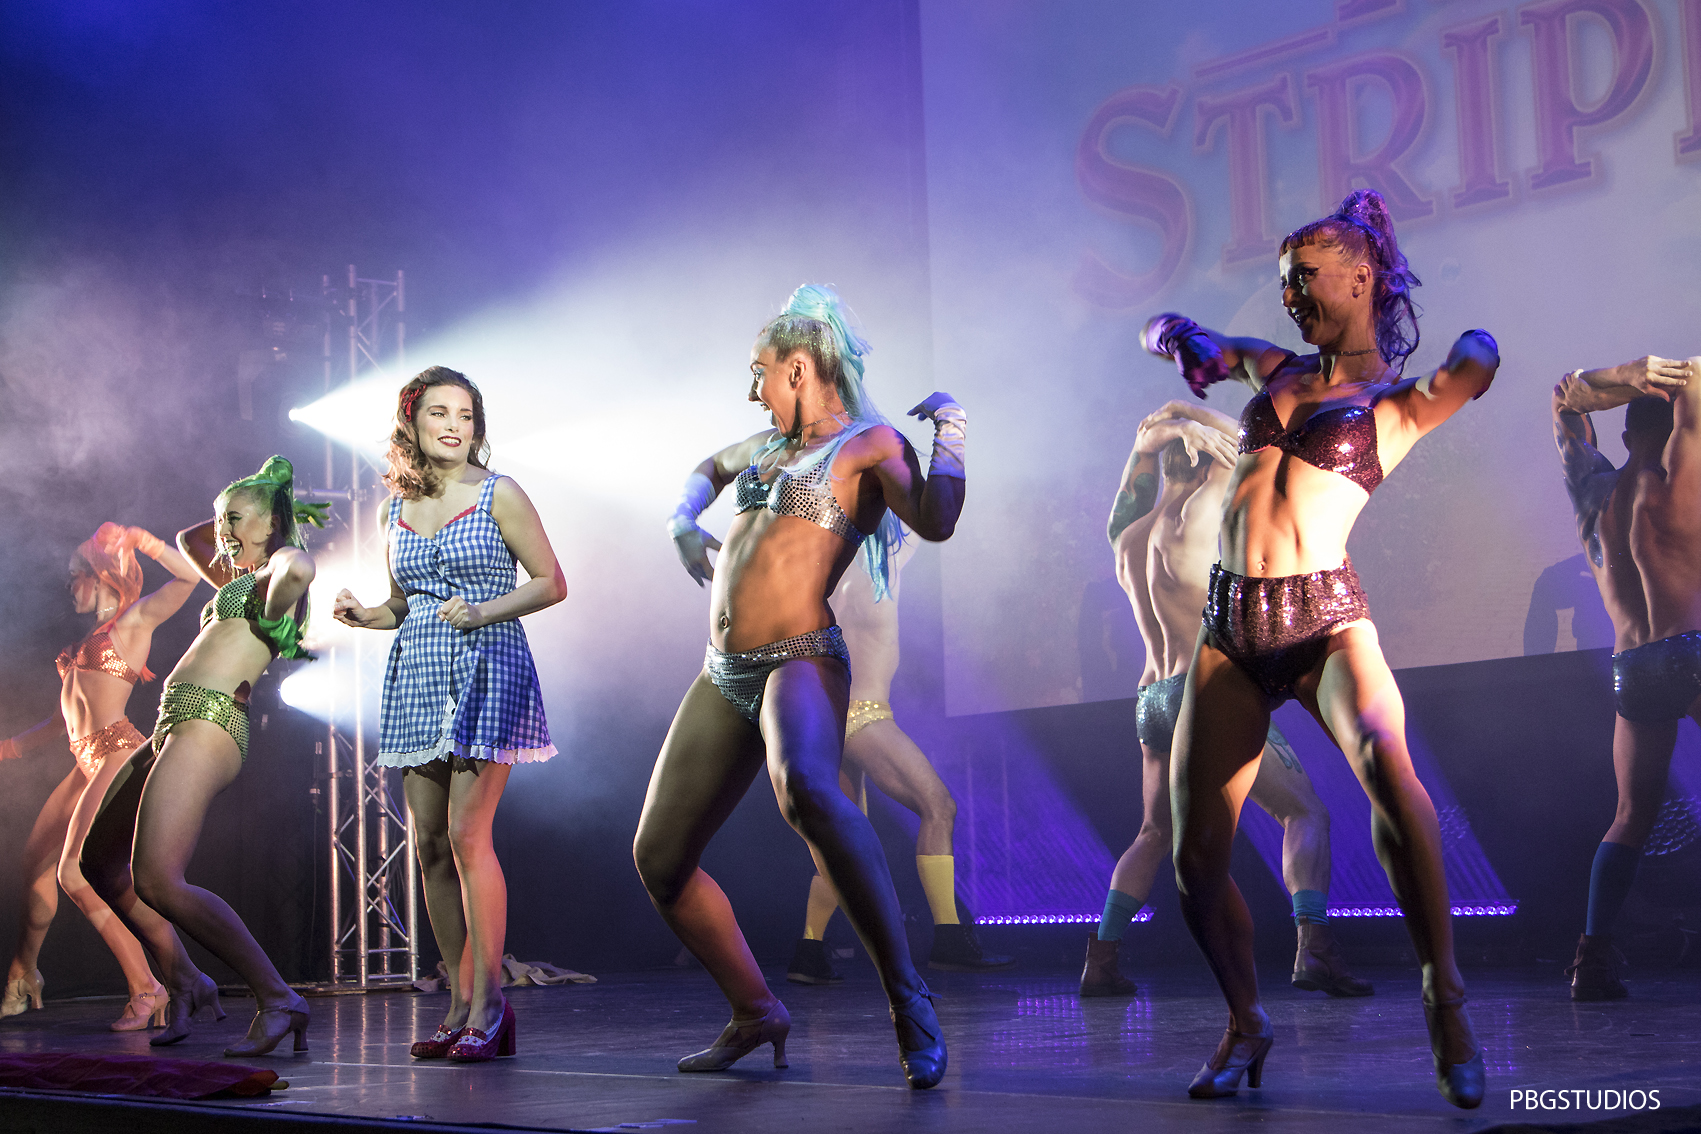 West End Bares Ruby Strippers show at the Novello Theatre (see Press and Events page for full gallery)